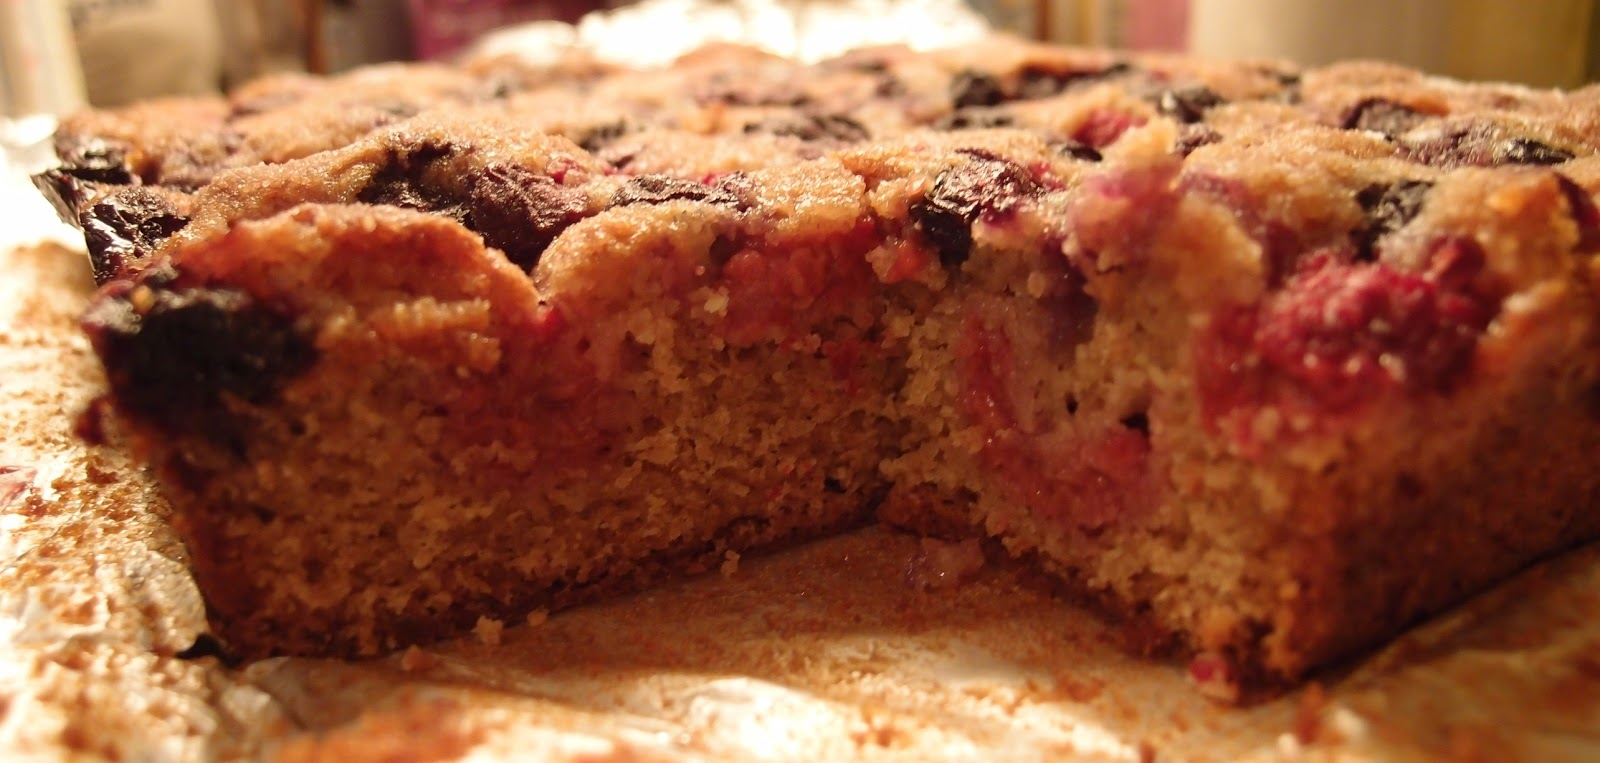 Spelt Cake Recipes Uk: The Caked Crusader: Spelt, Raspberry, Blueberry And Ginger